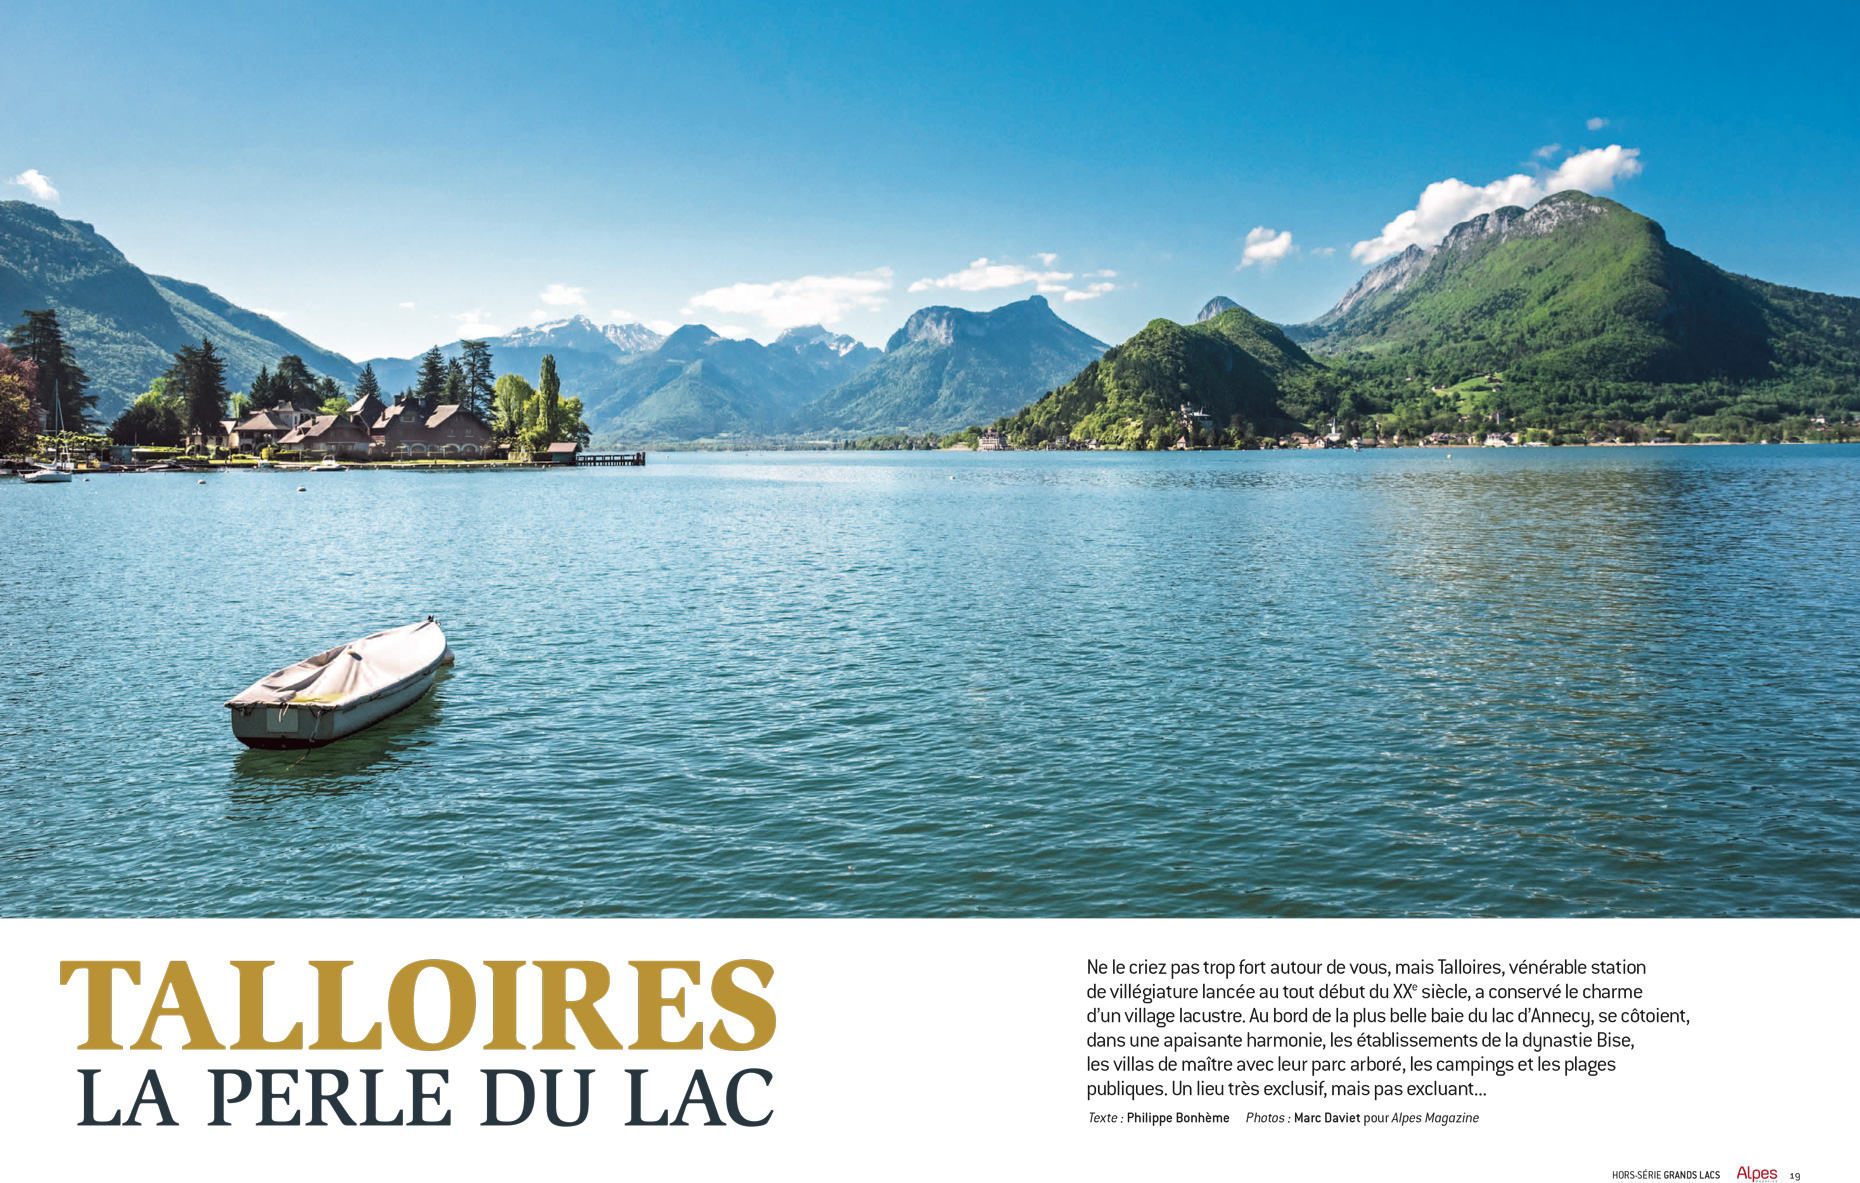 Alpes-Magazine -Talloires - Marc Daviet Photography